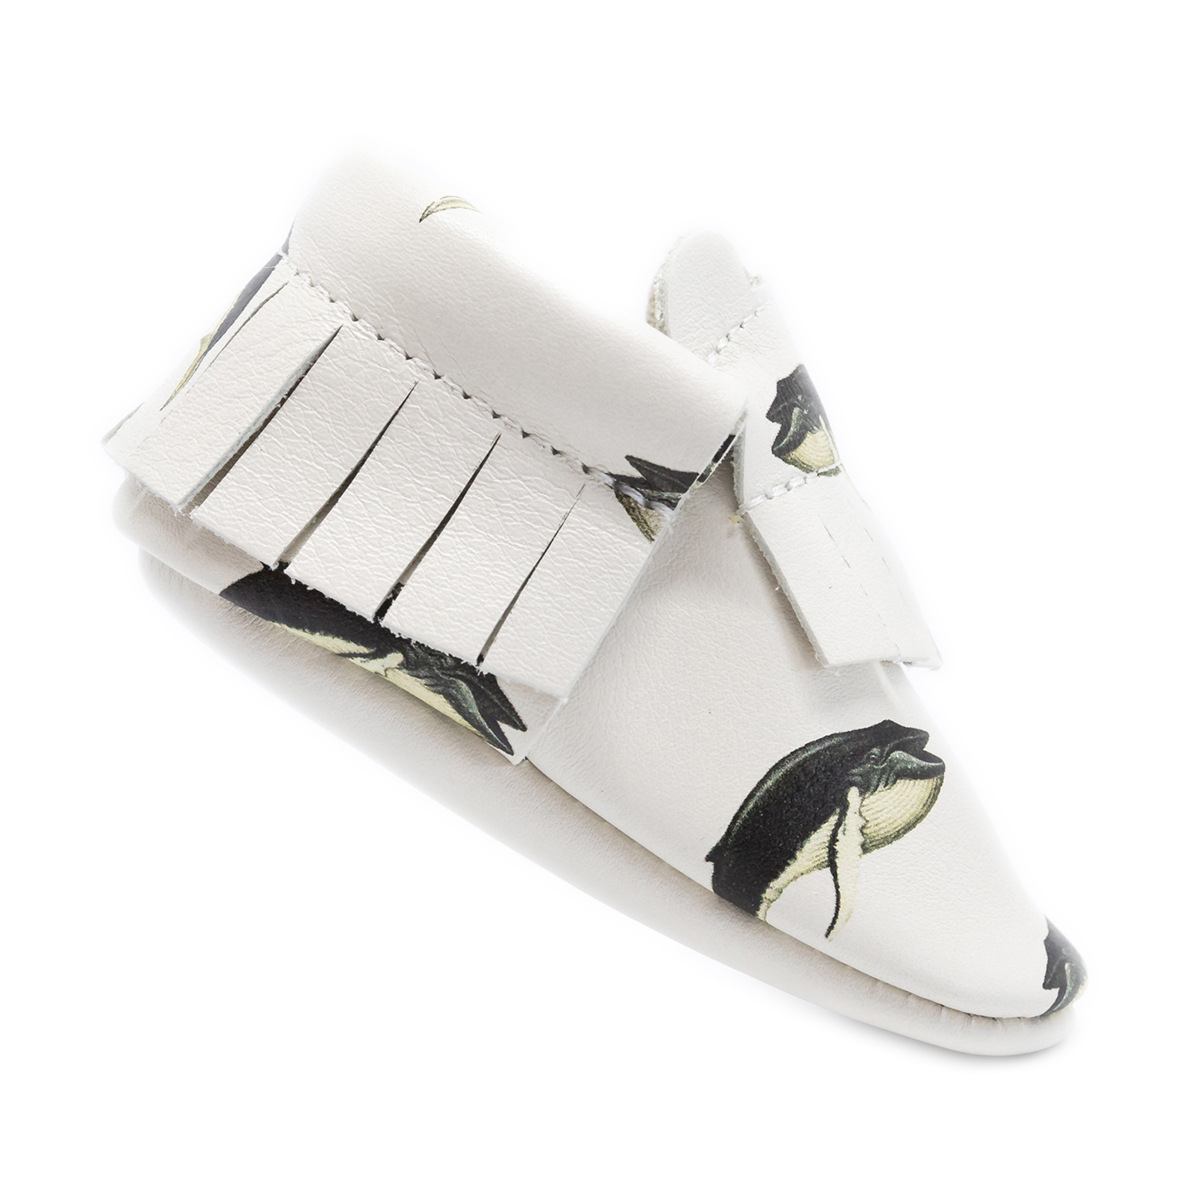 Chaussons & Chaussures Chaussons Megaptera - 18/19 Chaussons Megaptera - 18/19